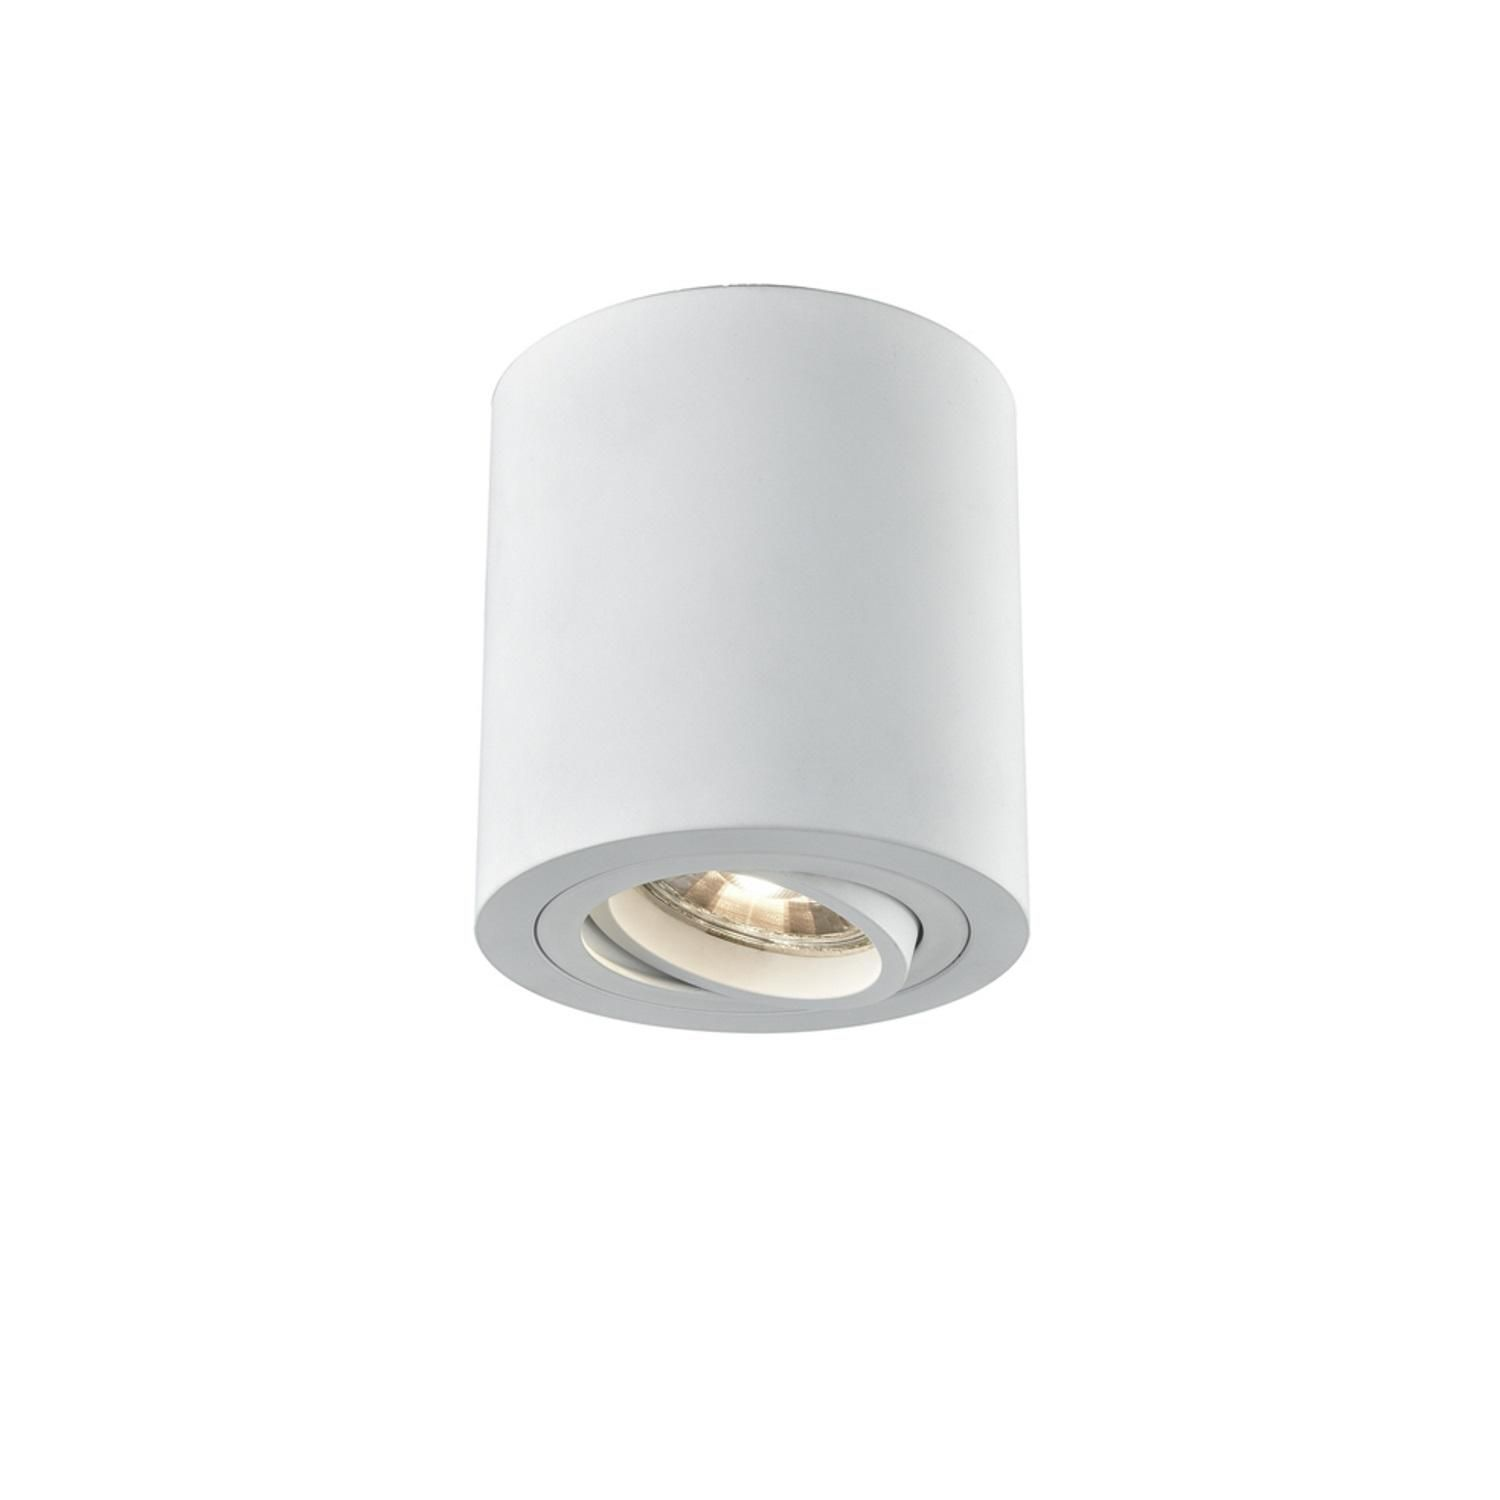 Dimmable Surface Mounted LED Ceiling Downlight Adajustable Spot Light Fixture